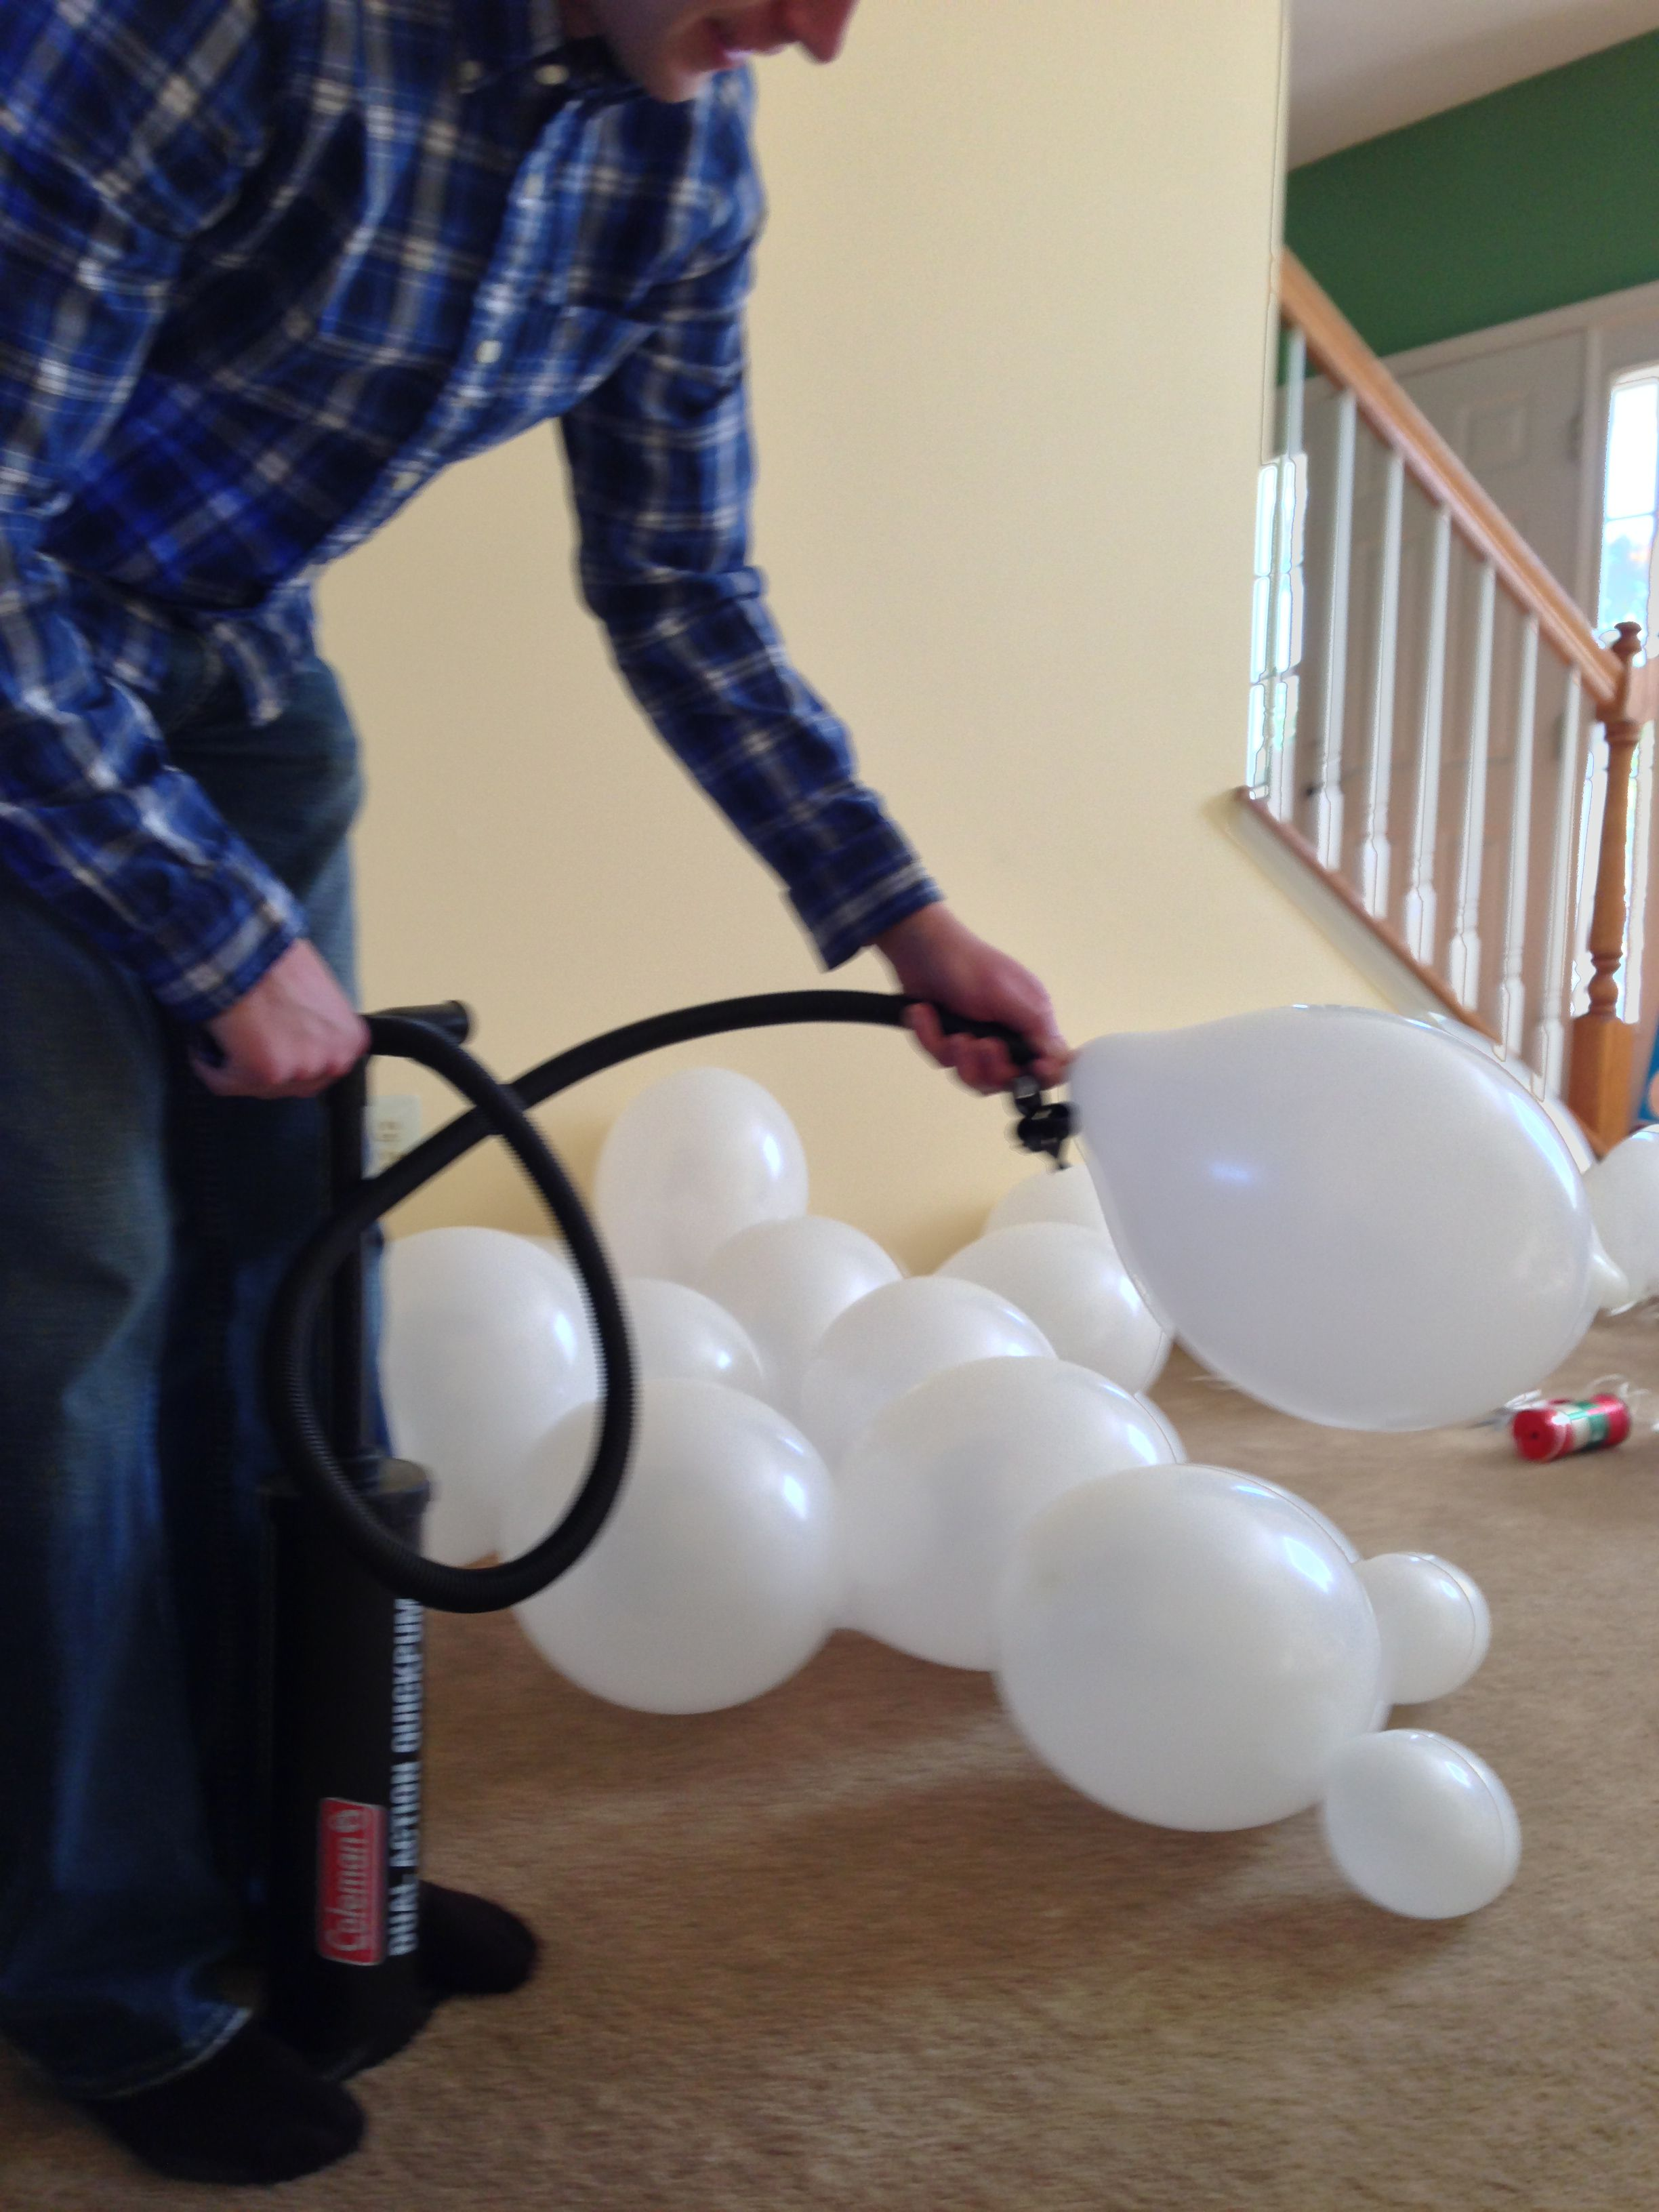 Pin By Laura Duray On Tips And Tricks Little Prince Party Blowing Up Balloons Balloon Backdrop